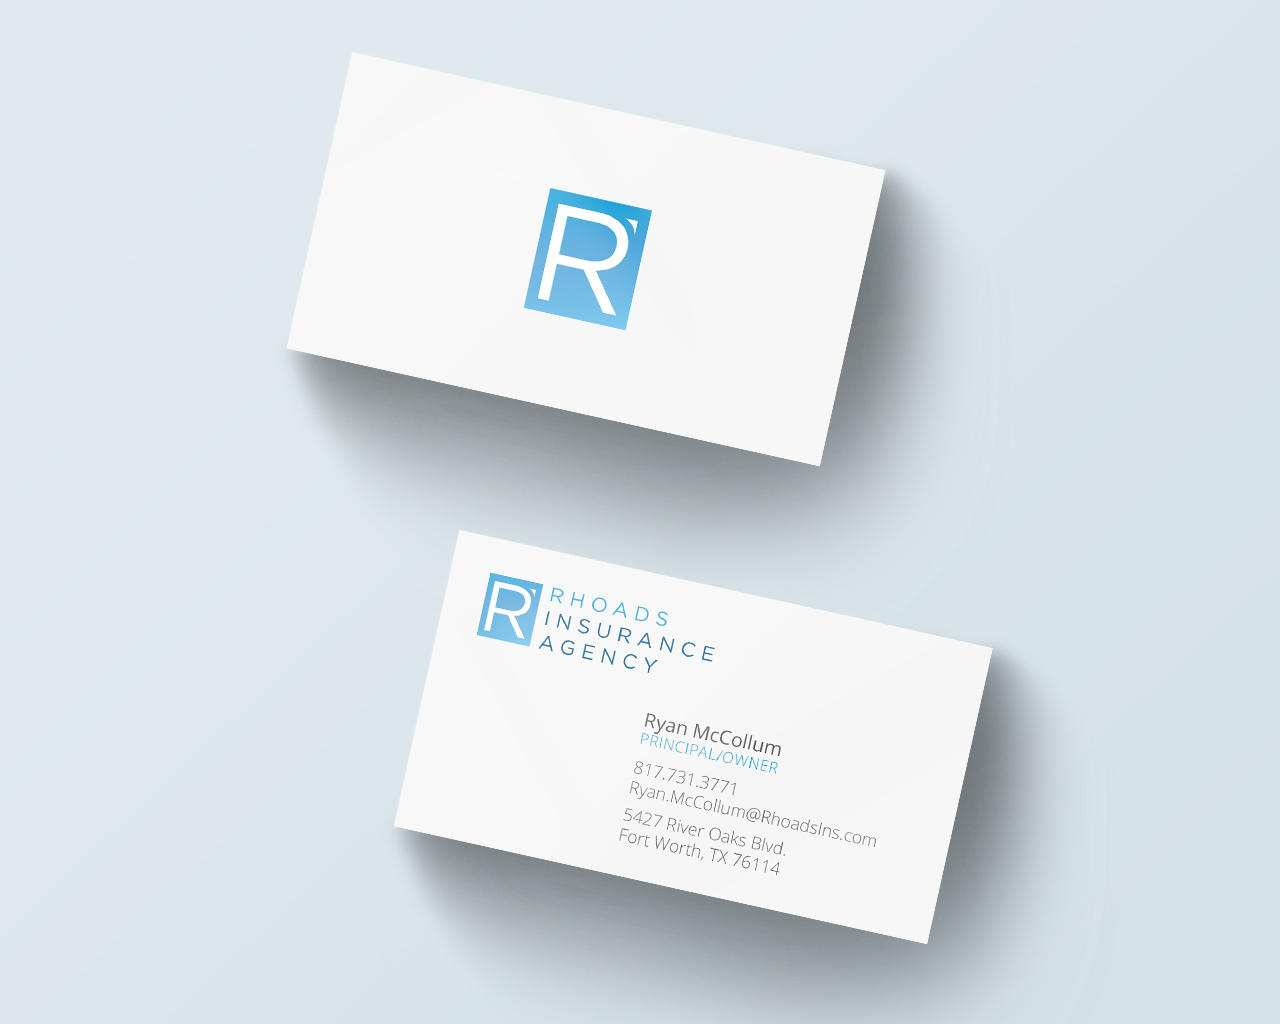 https://smartguests.com/images/products_gallery_images/custom_business_cards50.jpg